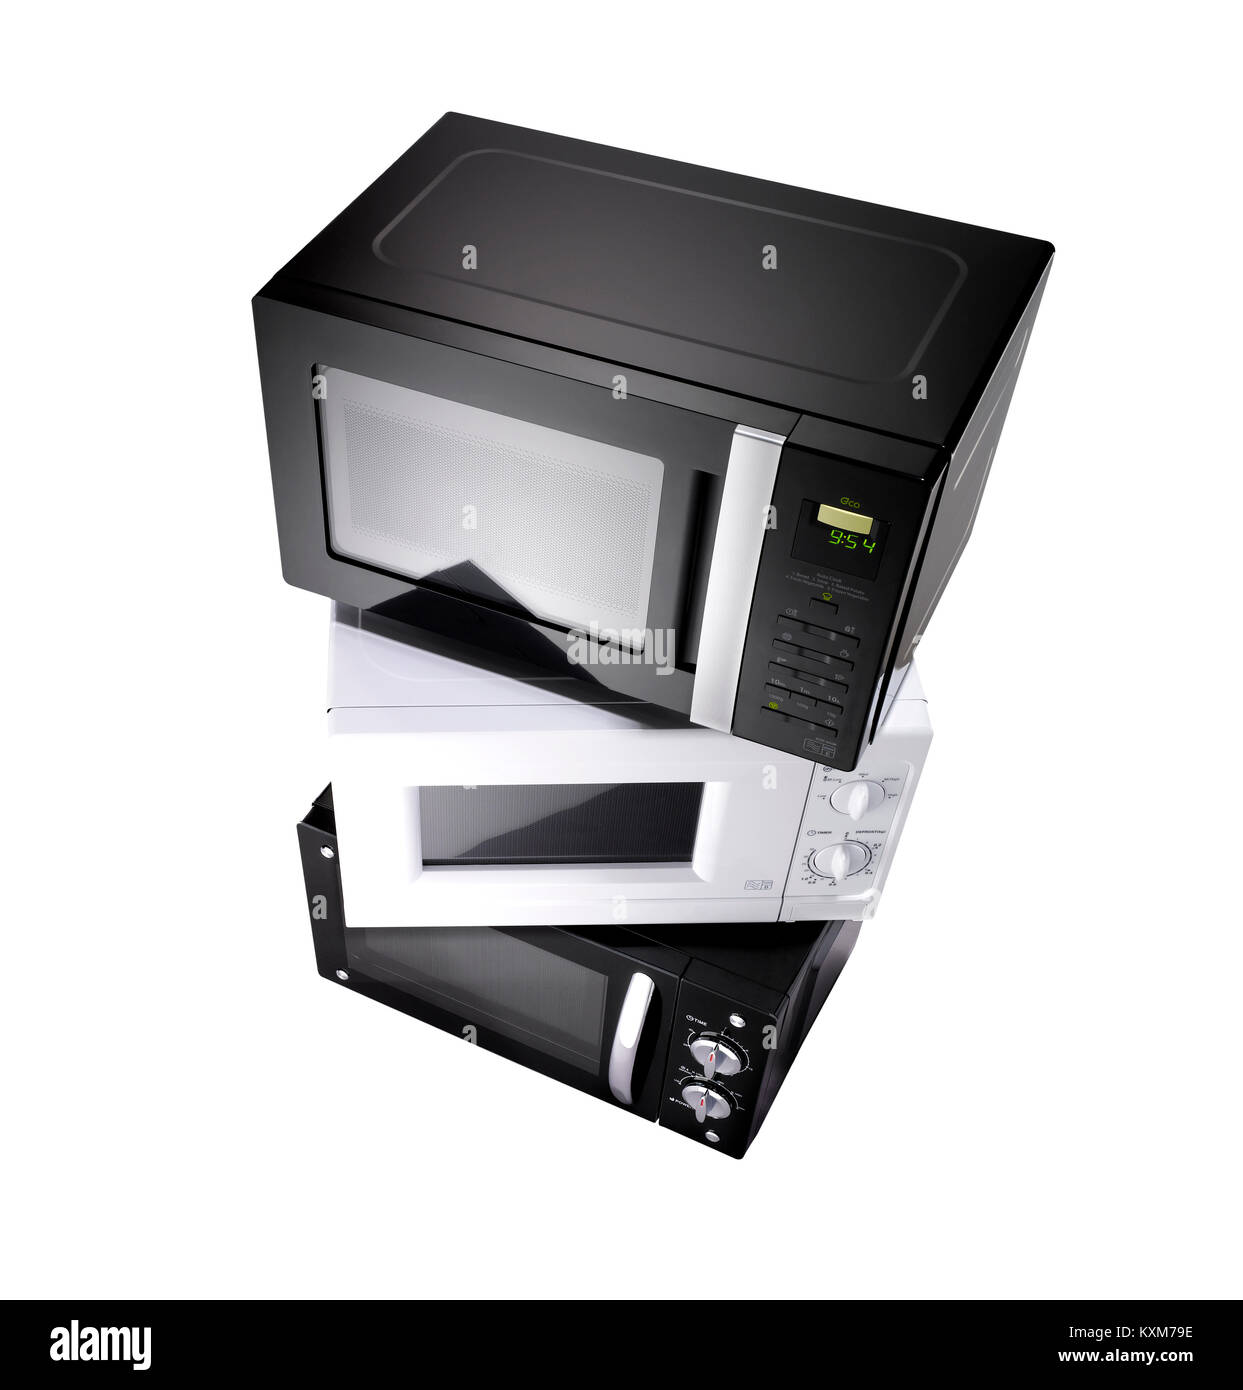 A stack of three microwaves shot with a wide angle lens on a white background - Stock Image